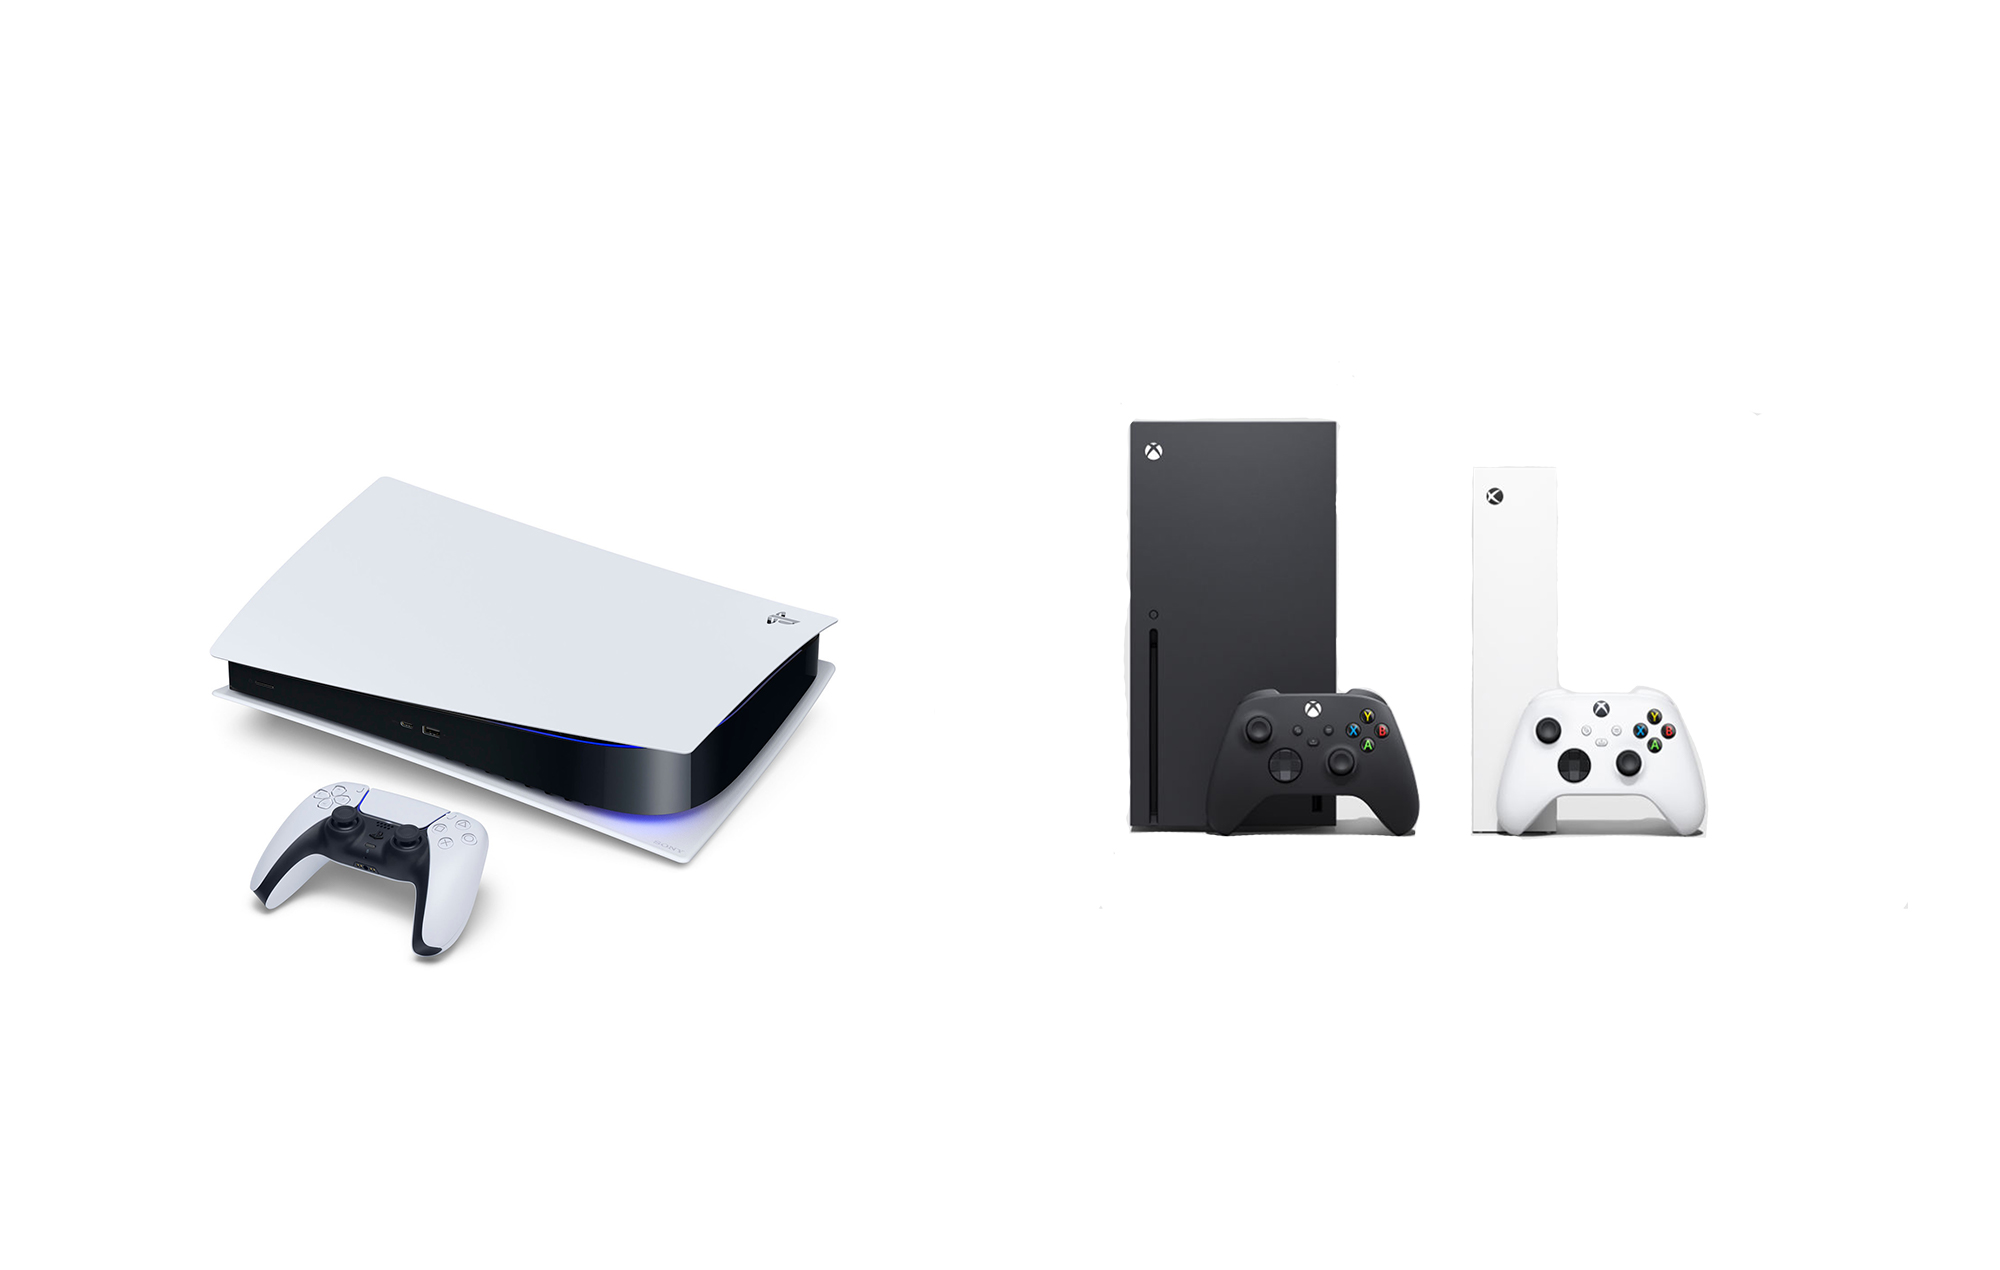 Xbox Series X & S and PS5